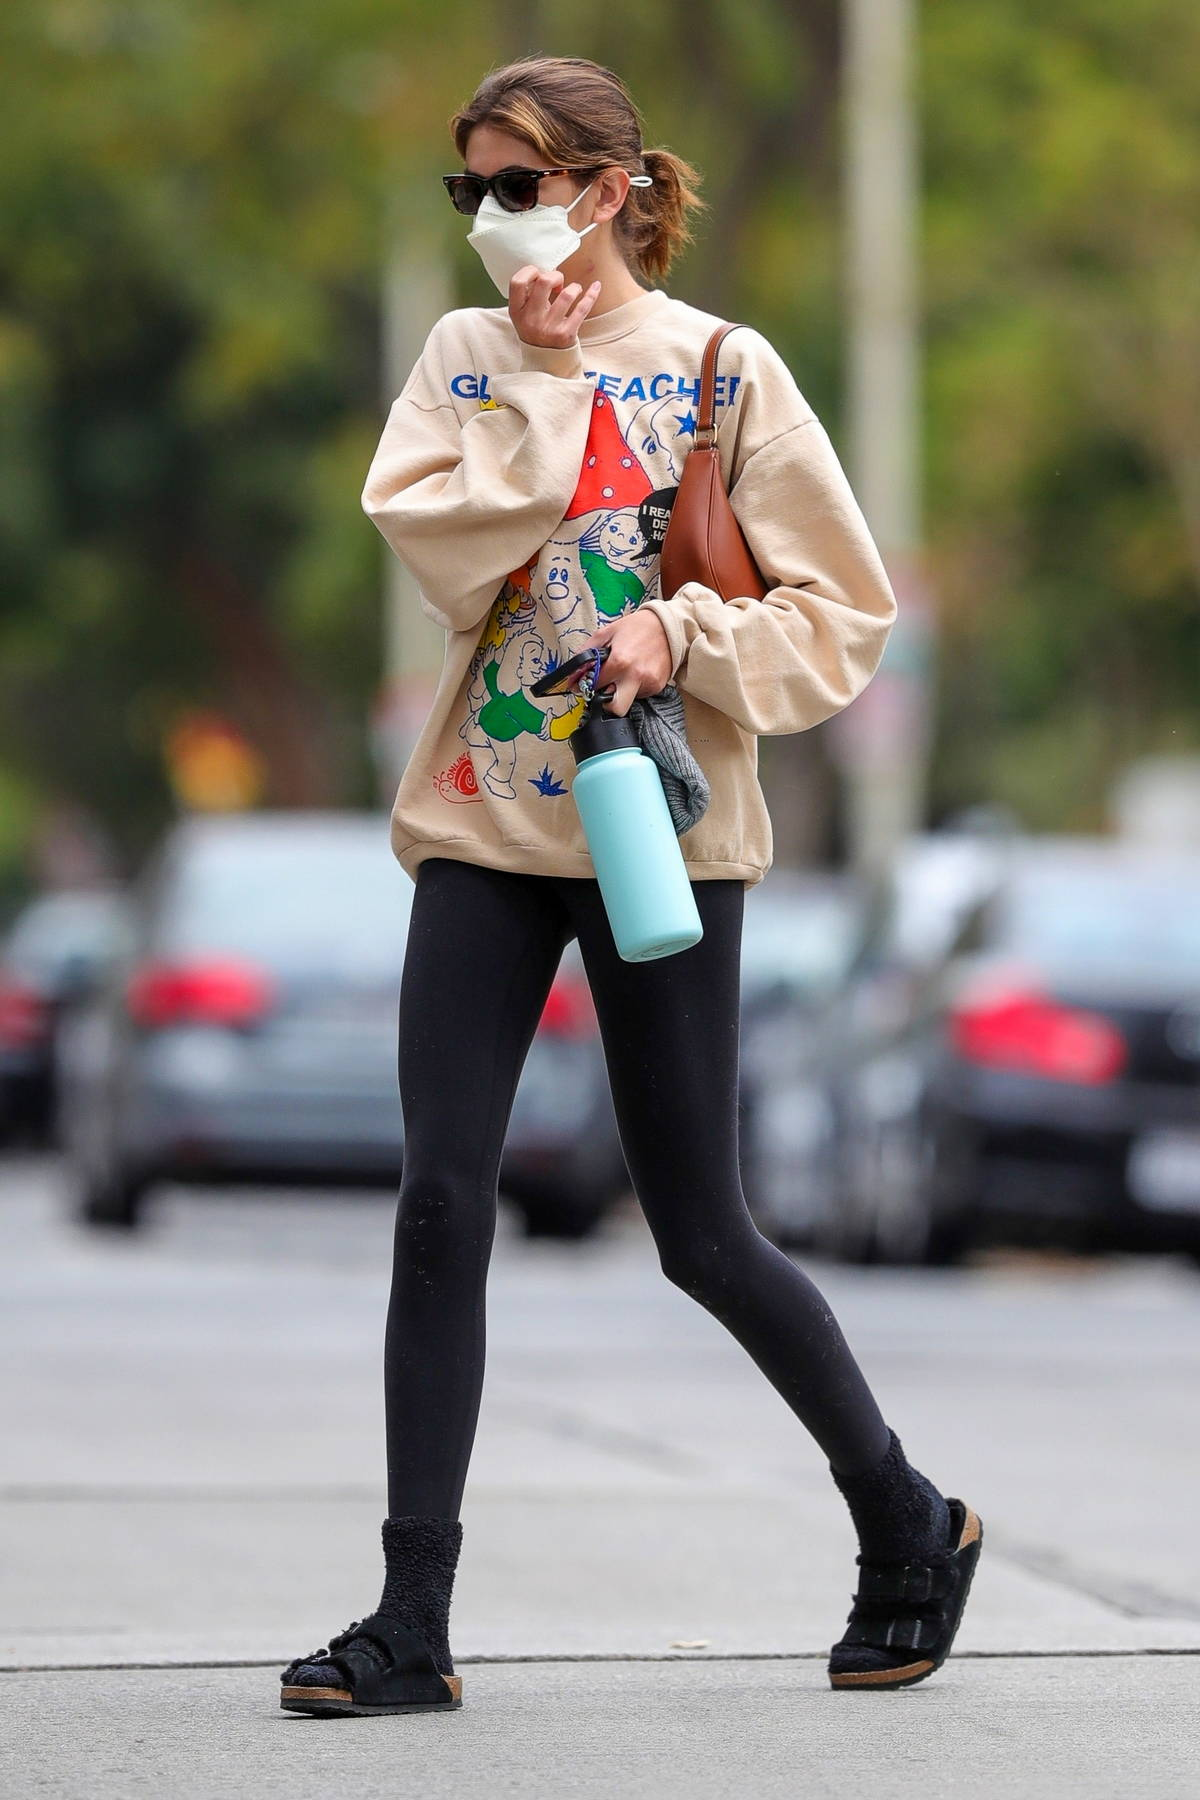 Kaia Gerber sports a beige sweatshirt and black leggings as she attends her Pilates class in West Hollywood, California